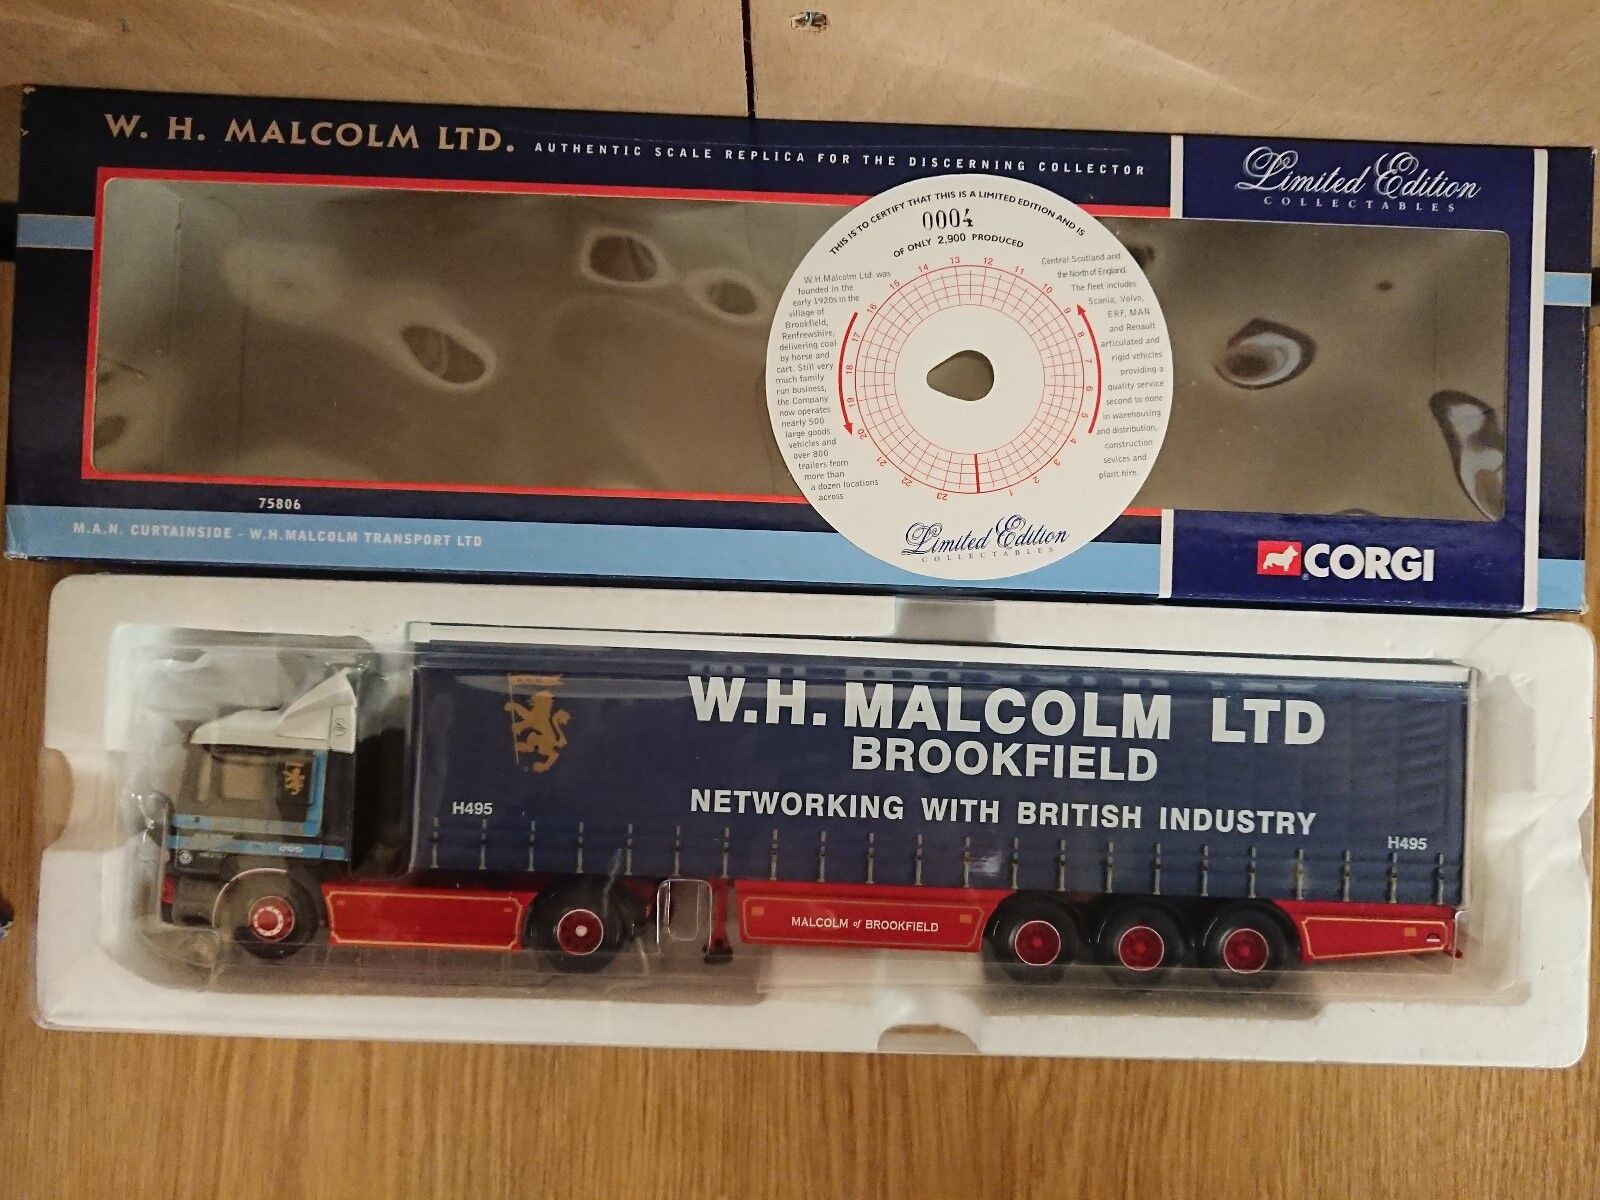 Corgi 75806 MAN Curtainside W.H. Malcolm Ltd Edition No. 0004 of 2900